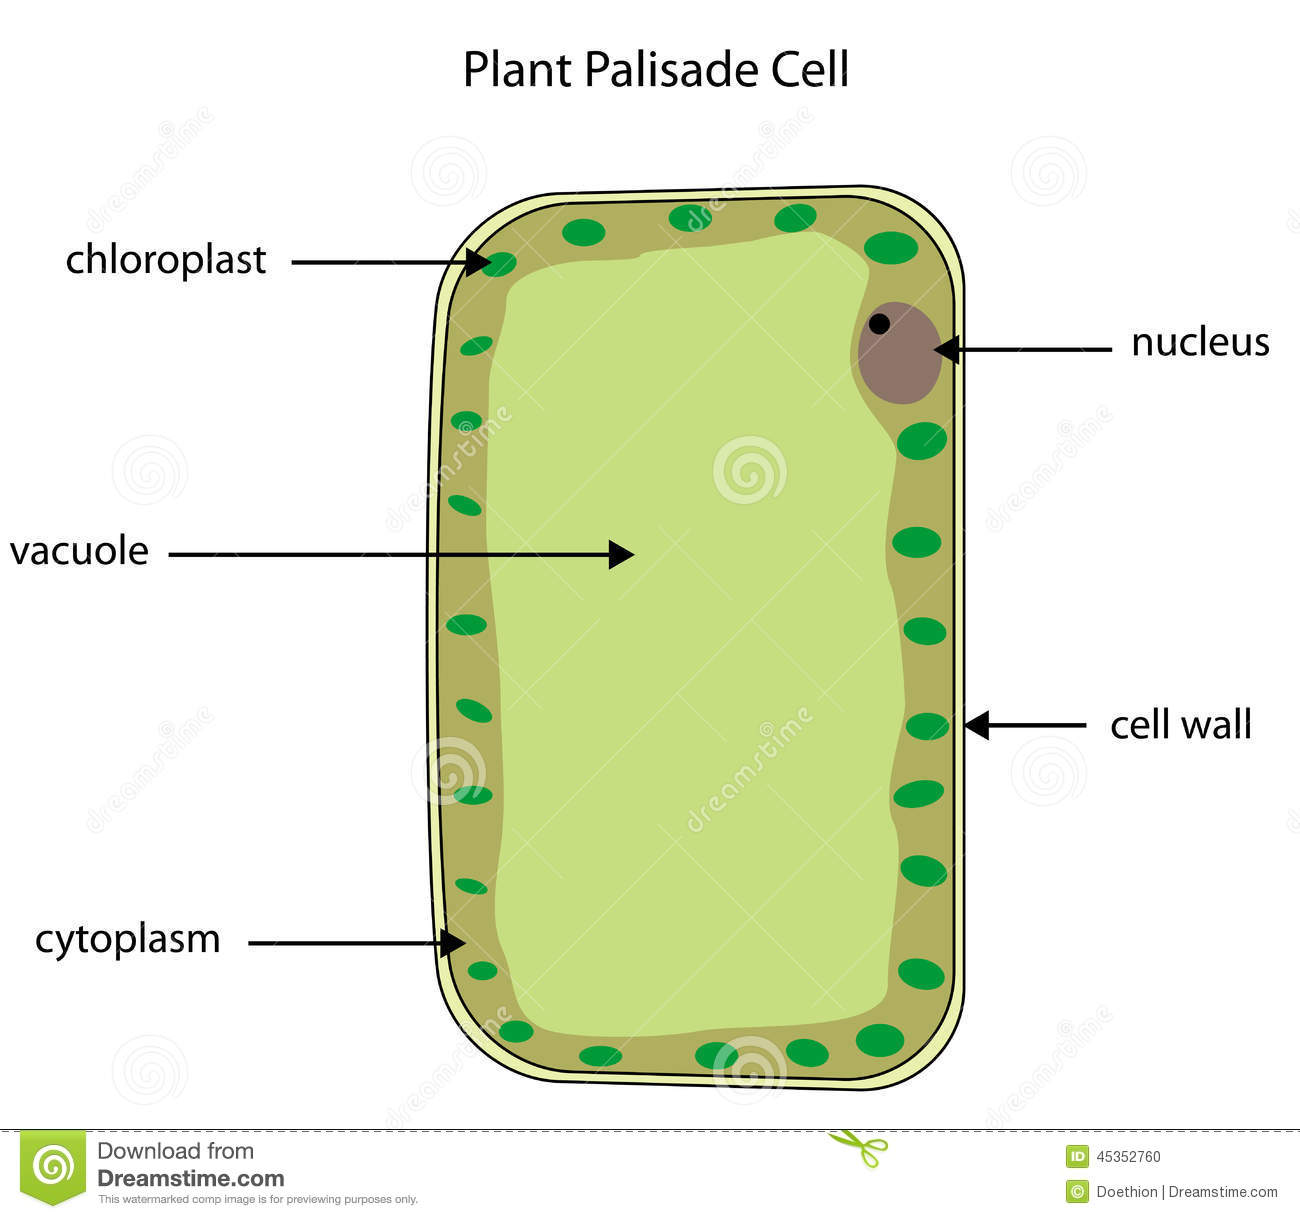 Labeled Diagram Of Golf Course Wiring Hole Labelled Plant Palisade Cell Stock Vector Illustration Rh Dreamstime Com Layout Holes